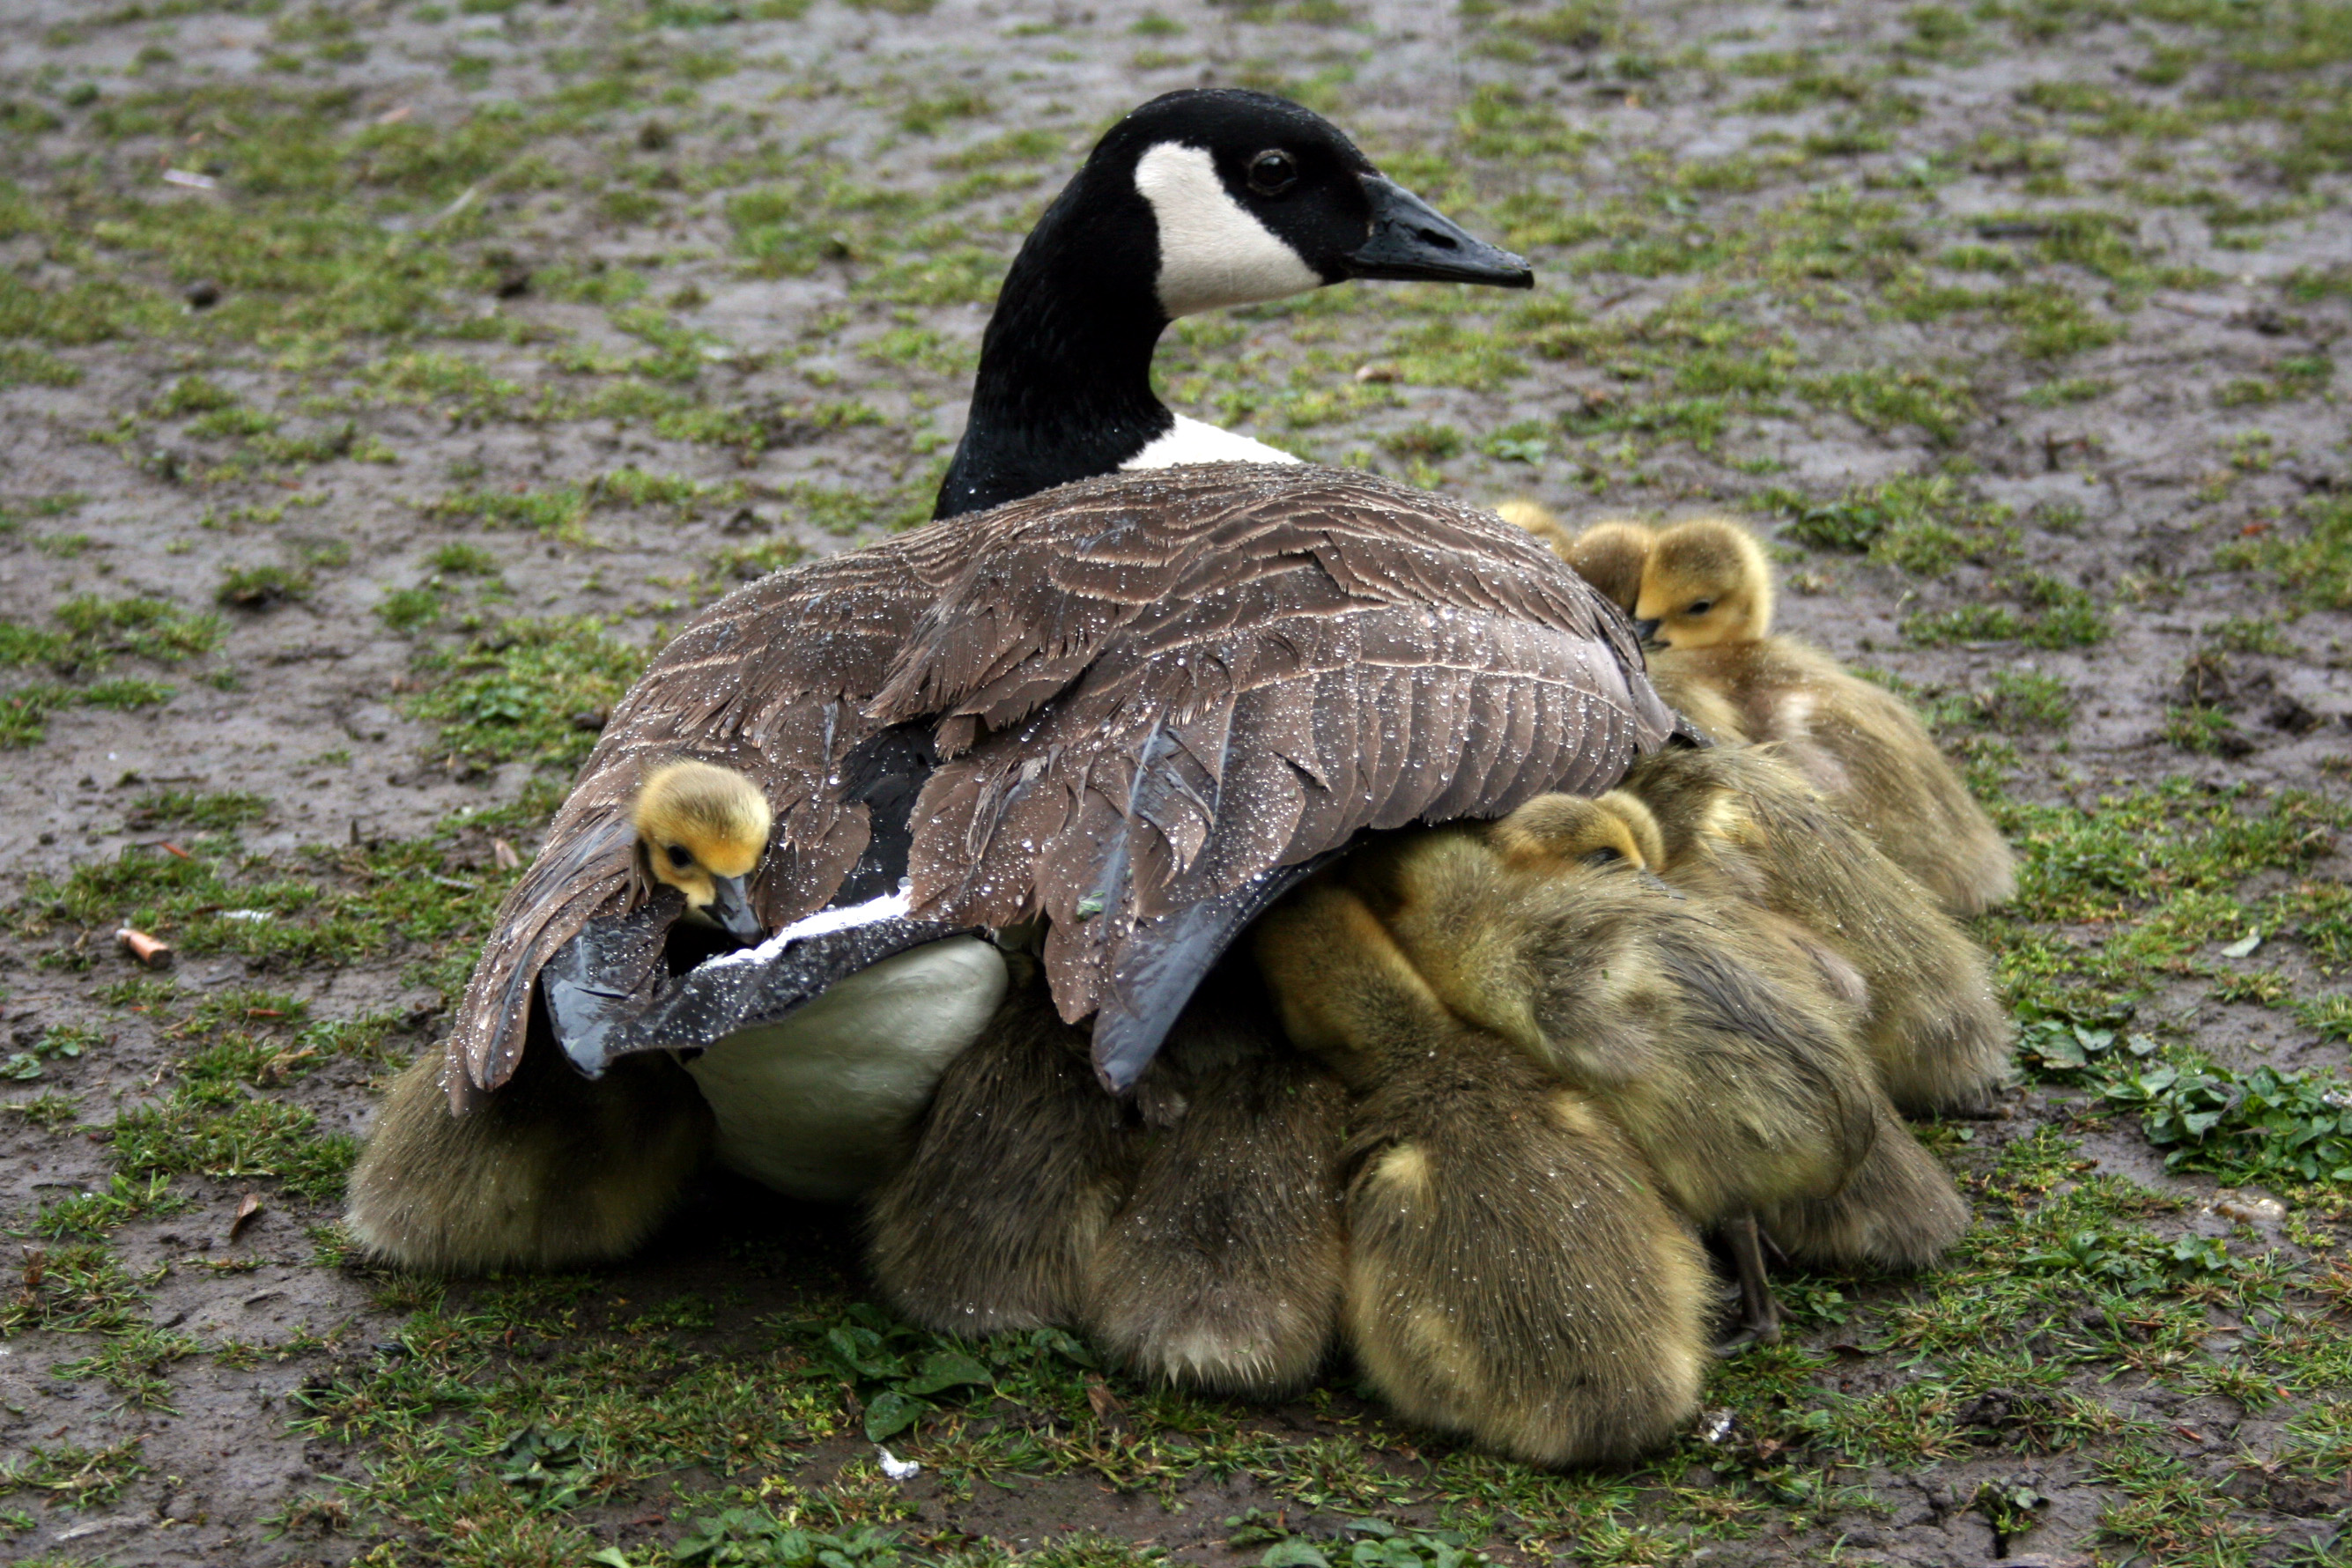 http://upload.wikimedia.org/wikipedia/commons/6/6e/Mother_shelters_goslings.jpg